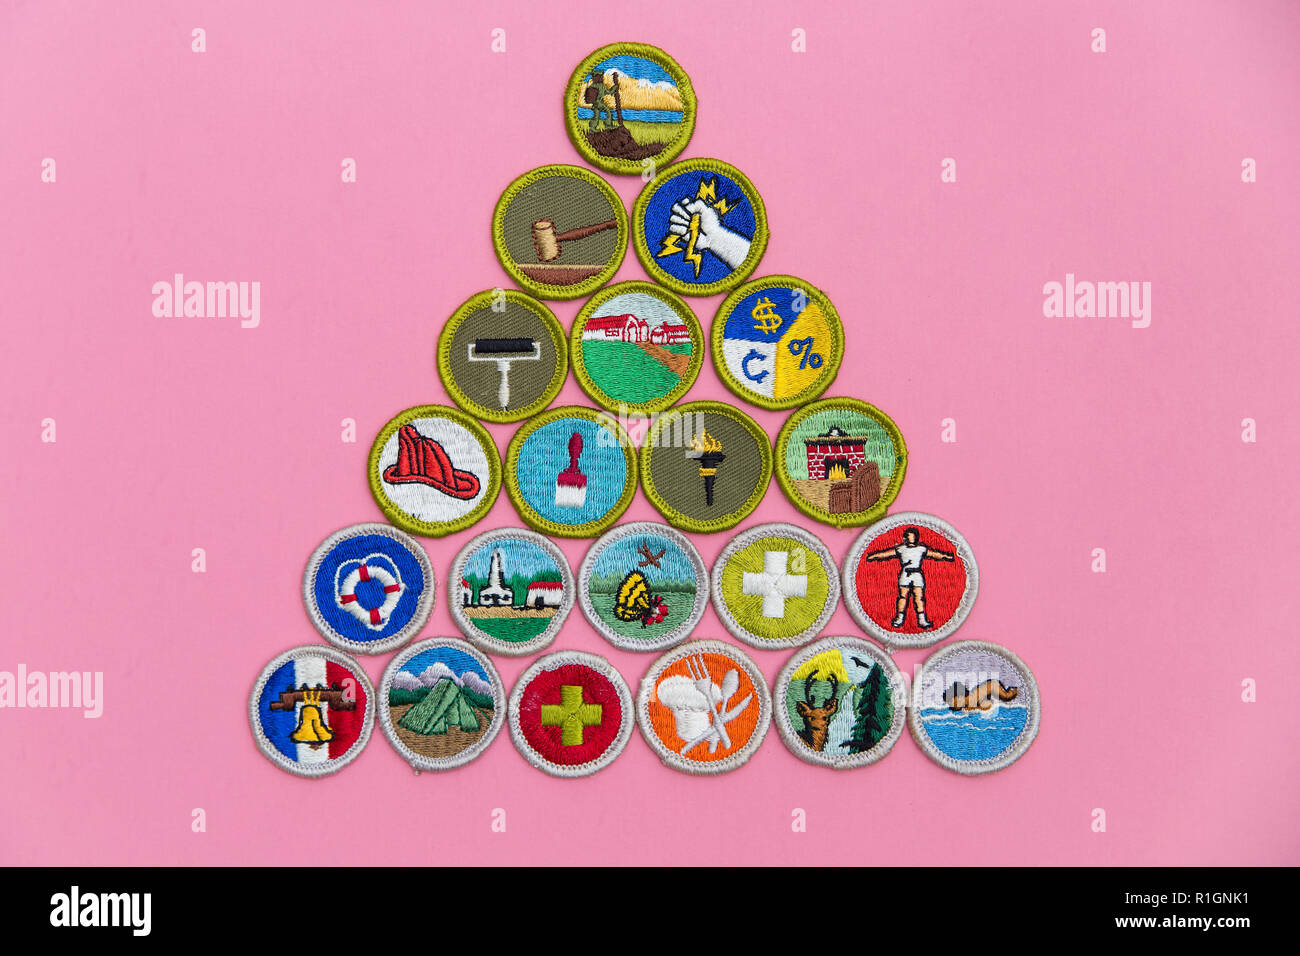 SAINT LOUIS, UNITED STATES - AUG 22, 2018:  A geometric arrangement of Boy Scouts of America (BSA) merit badges on pink background as BSA welcomes gir - Stock Image